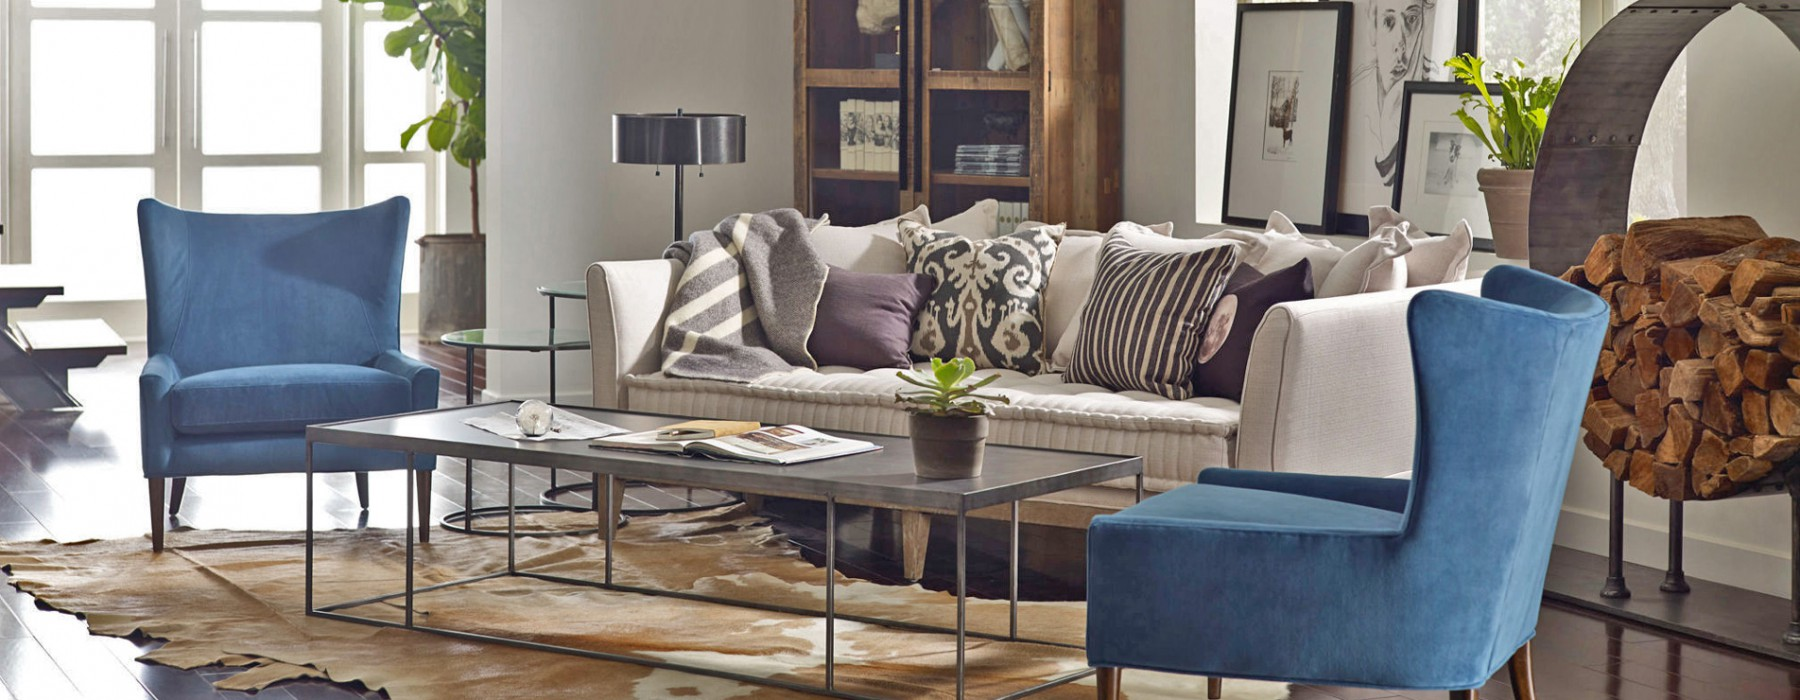 Hide Rugs: Why We Love Them